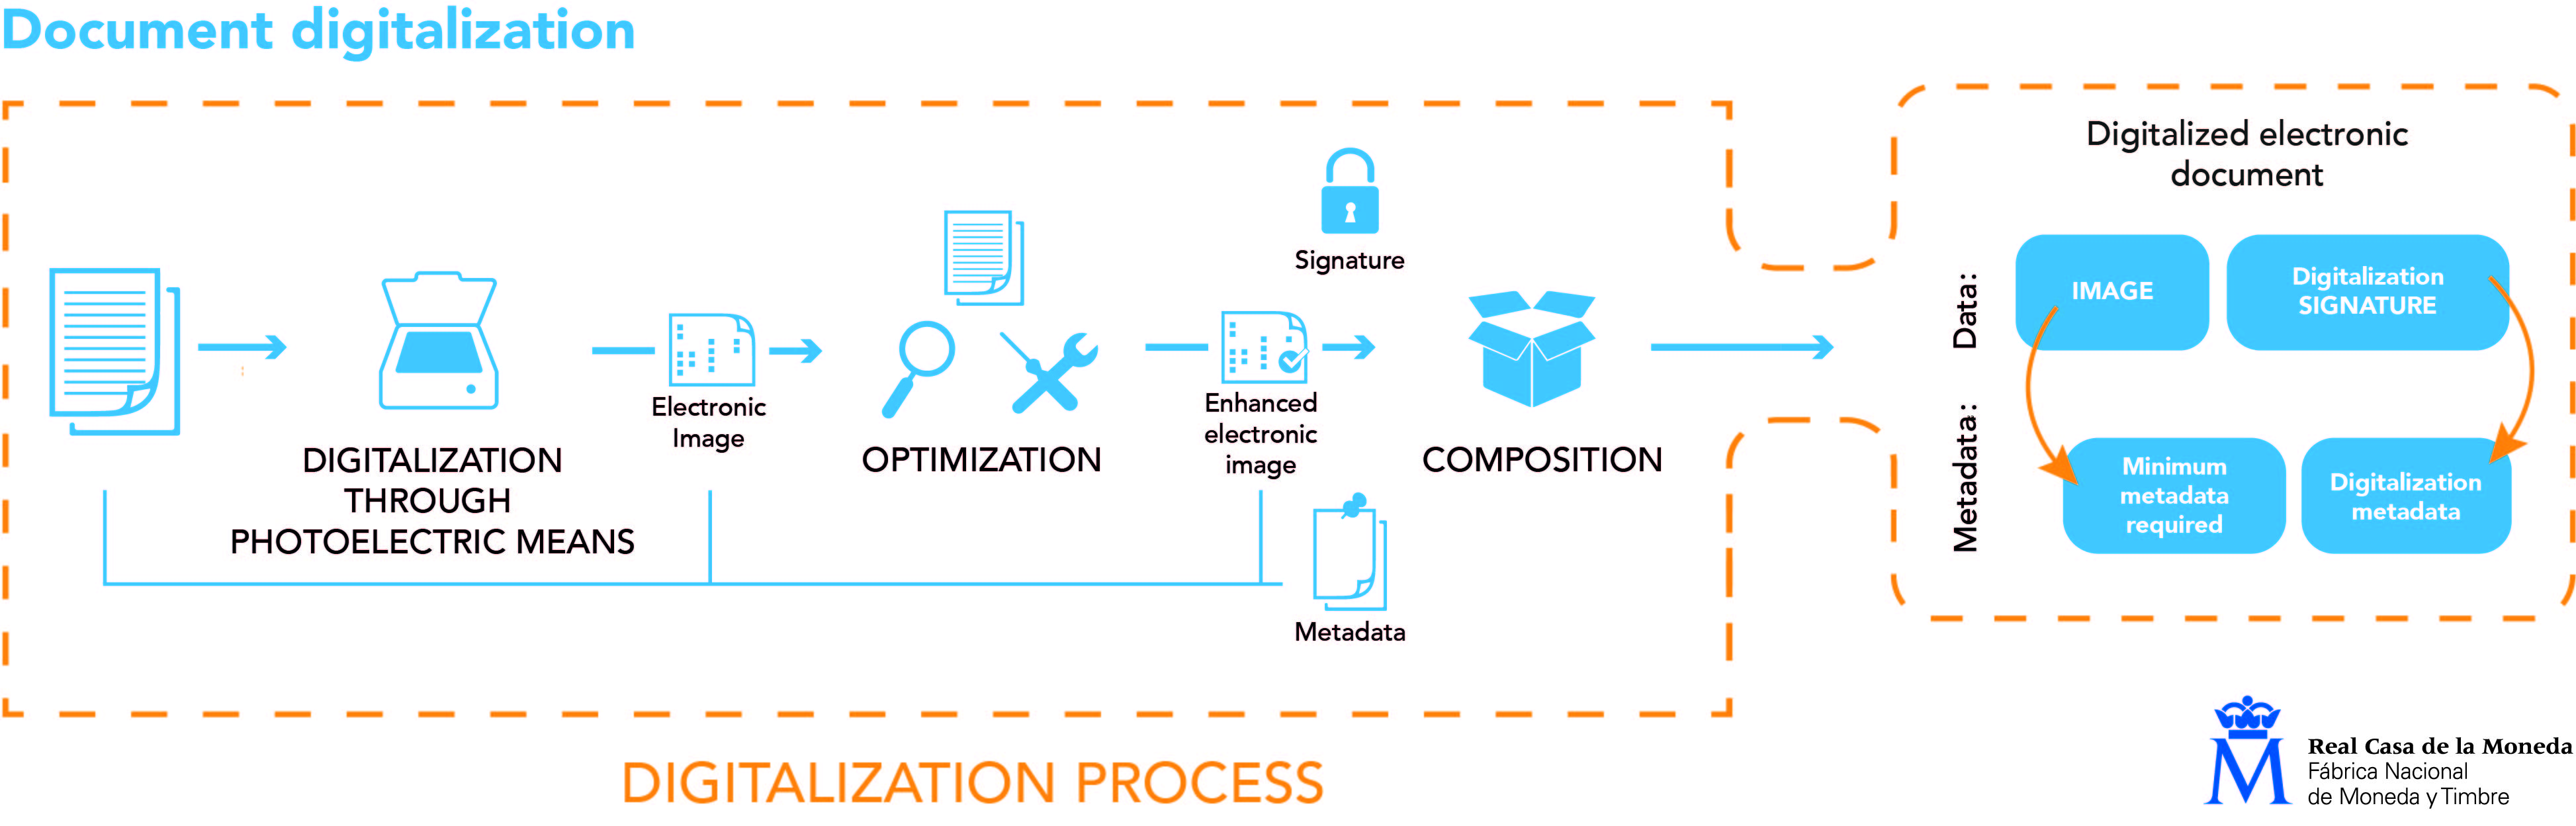 Digitalization process